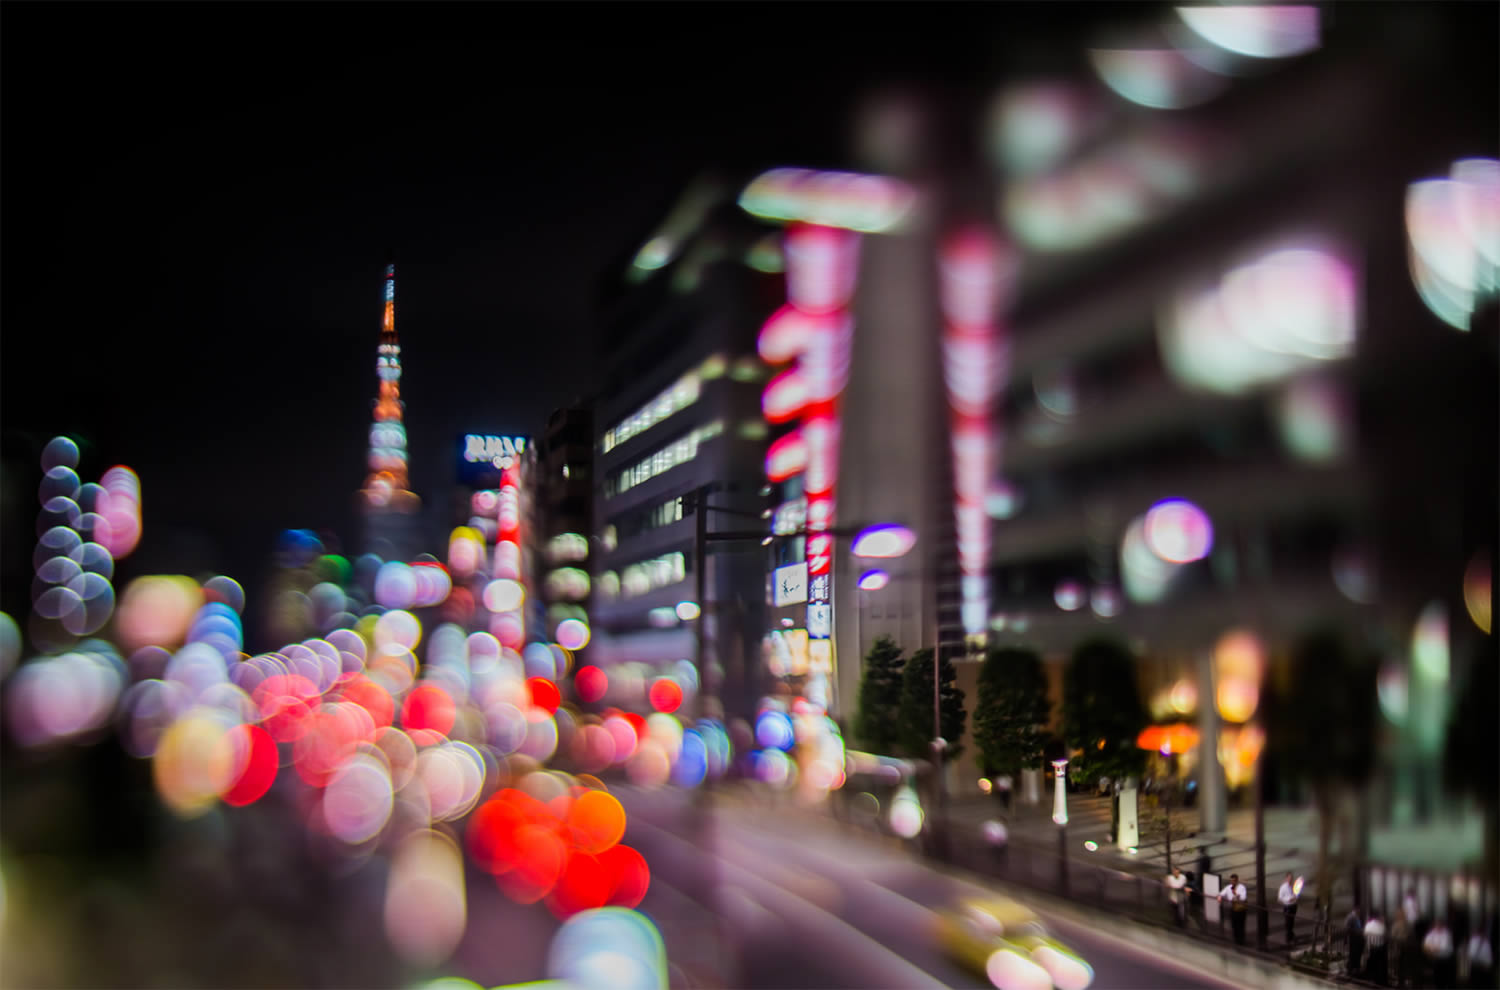 tokyo tower and red lights, bokeh photography, japan, by Takashi Kitajima